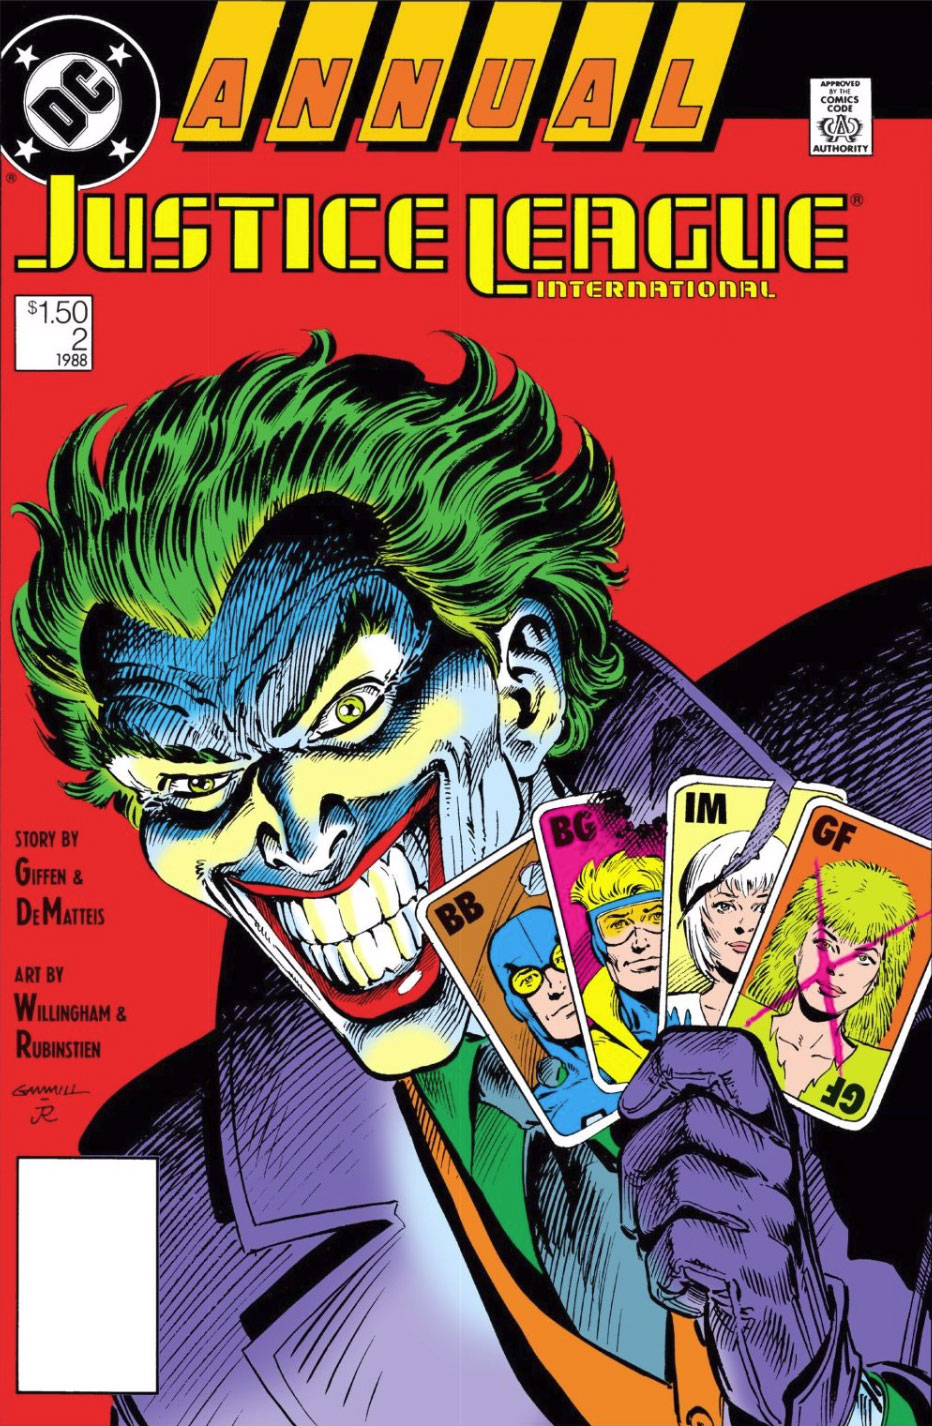 Justice League International Annual #2 cover by Kerry Gammill and Joe Rubinstein